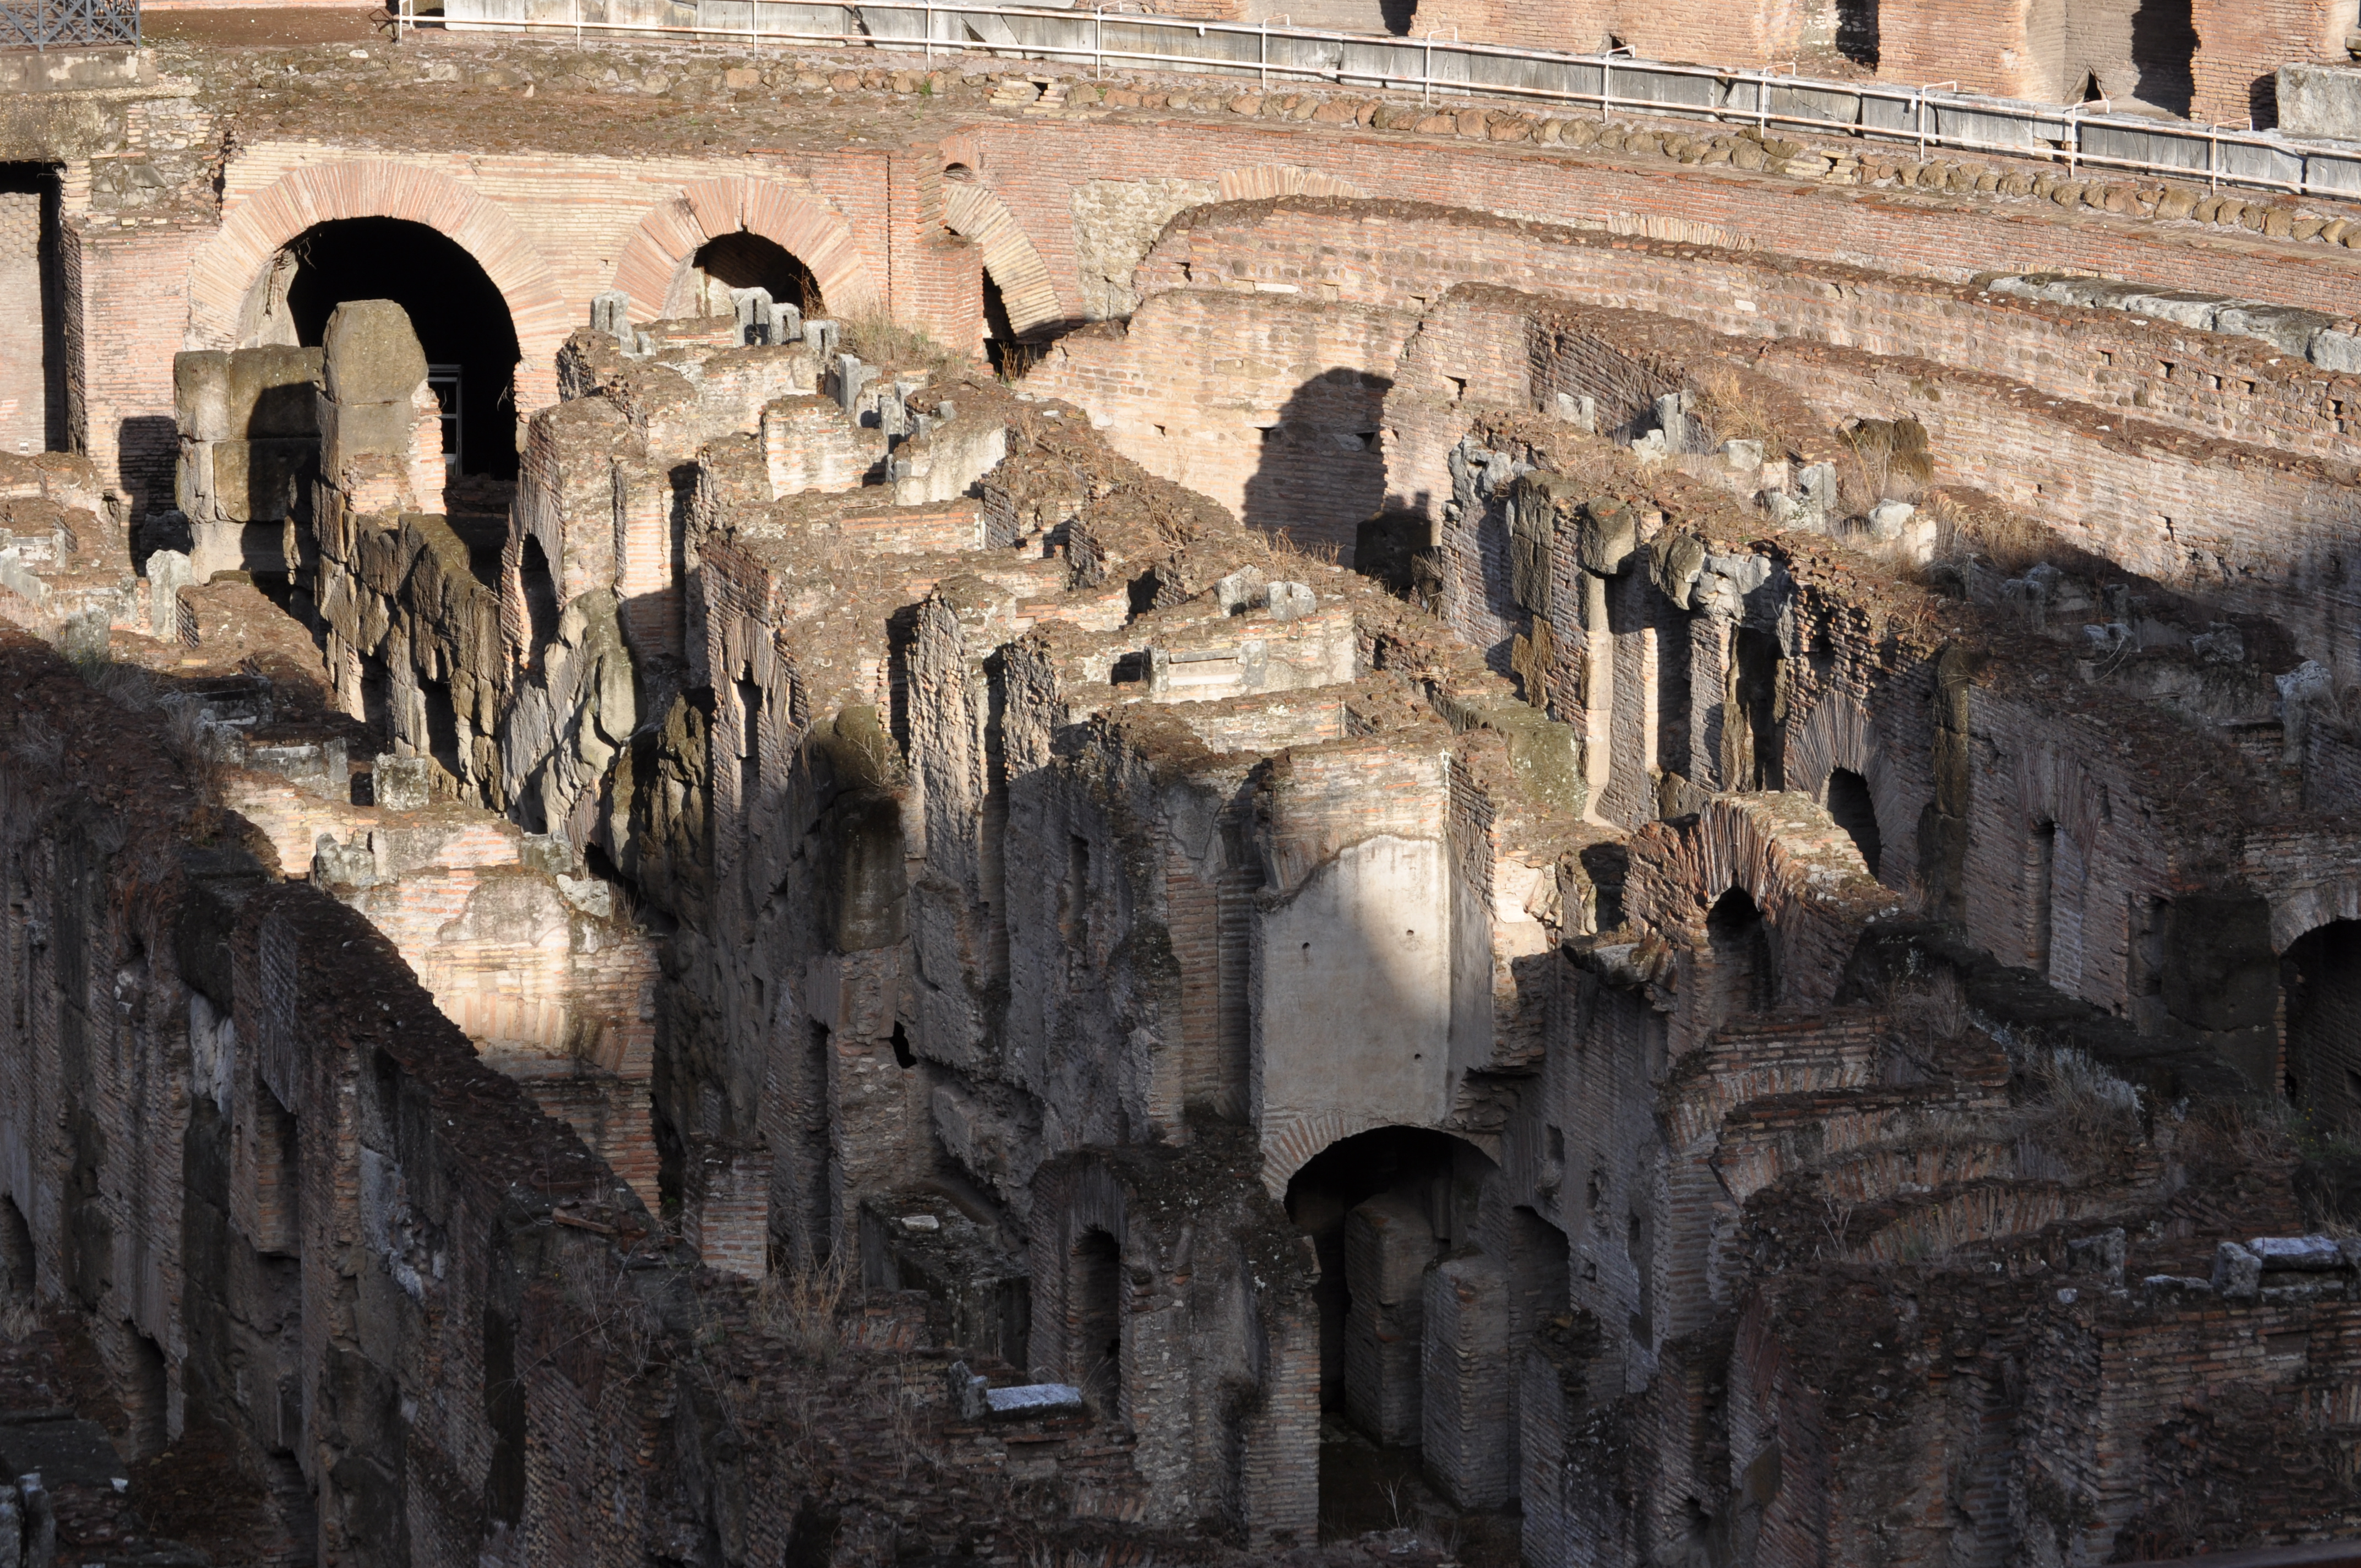 Under the Colosseum floors